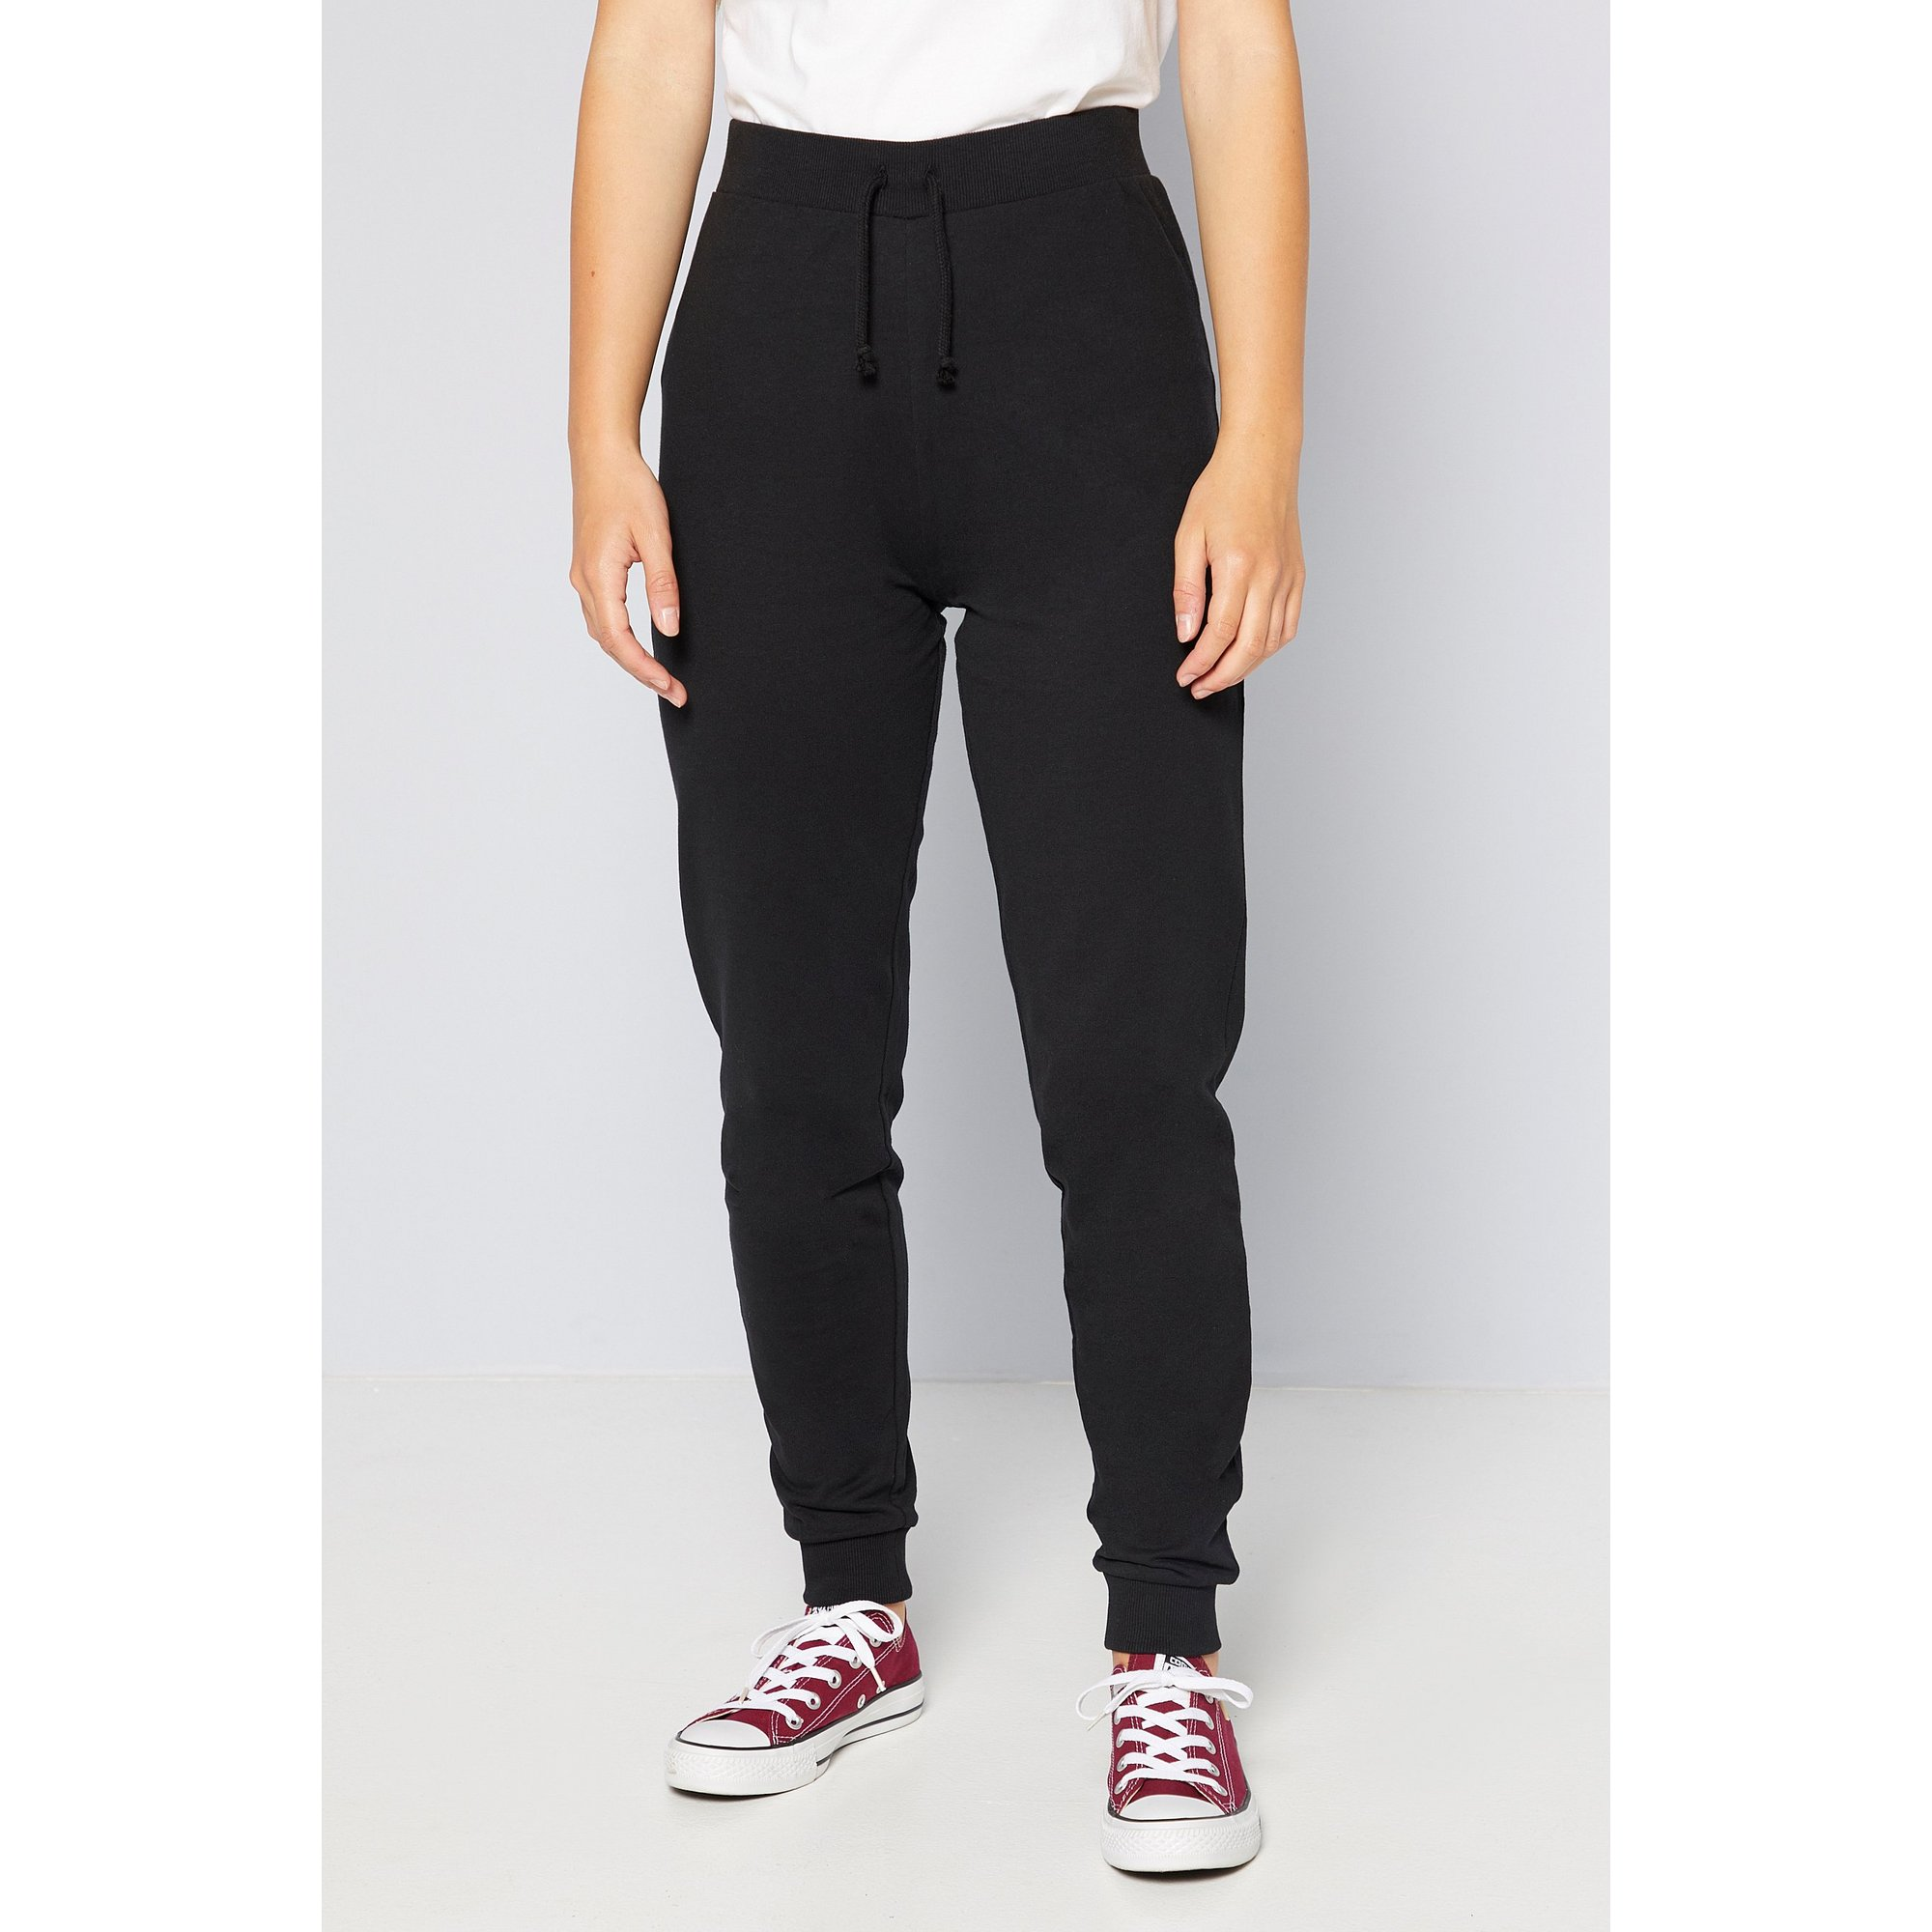 Image of Girls Black Joggers